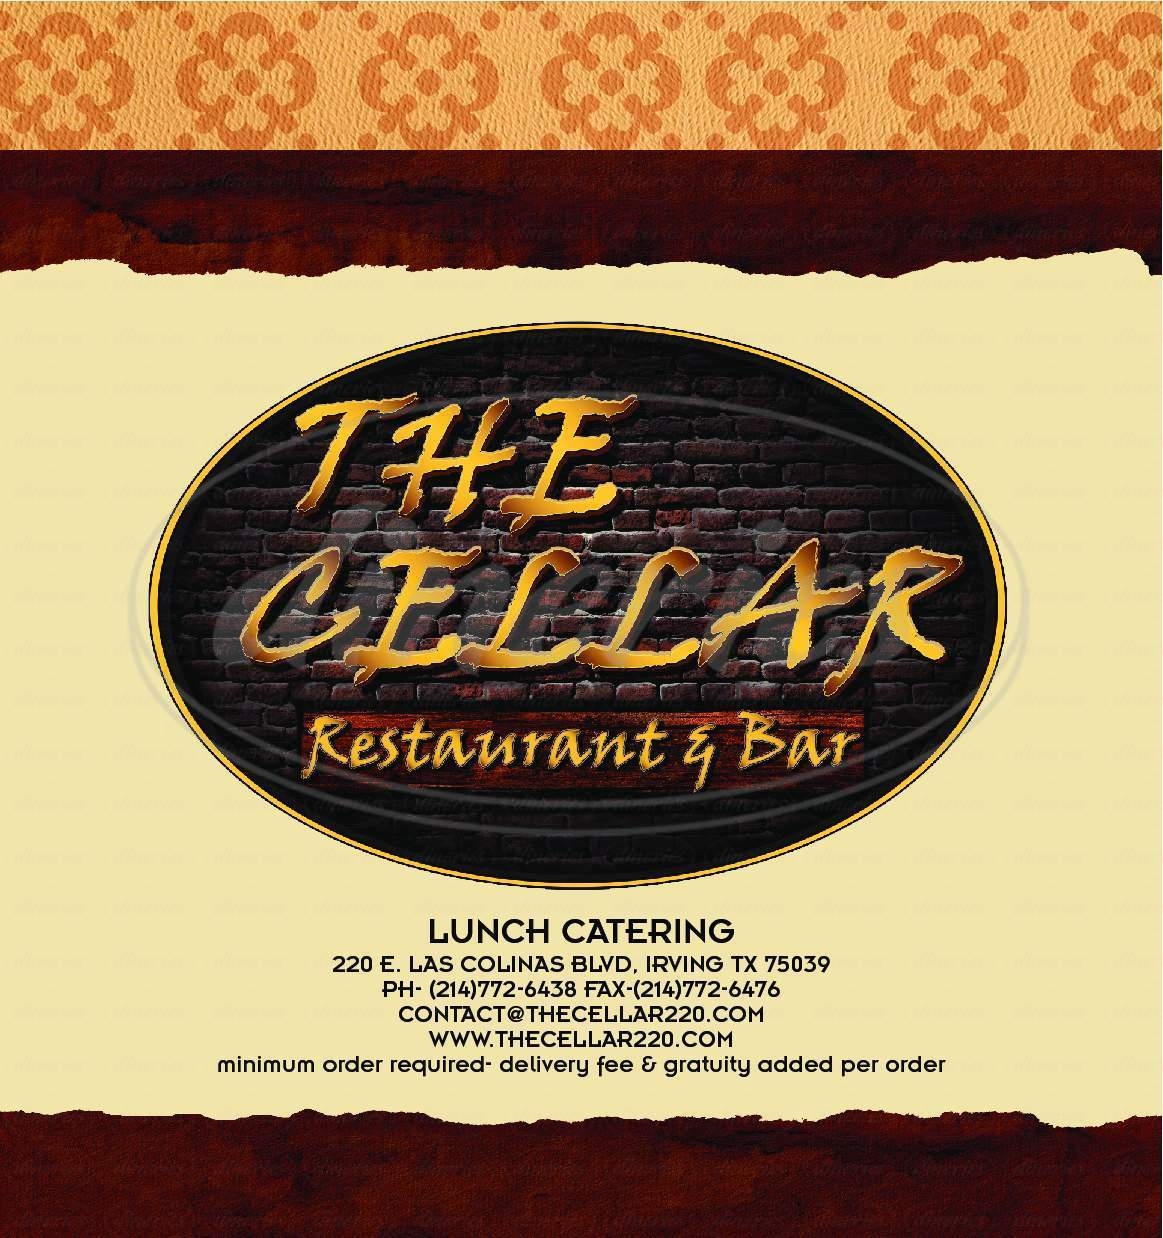 menu for The Cellar